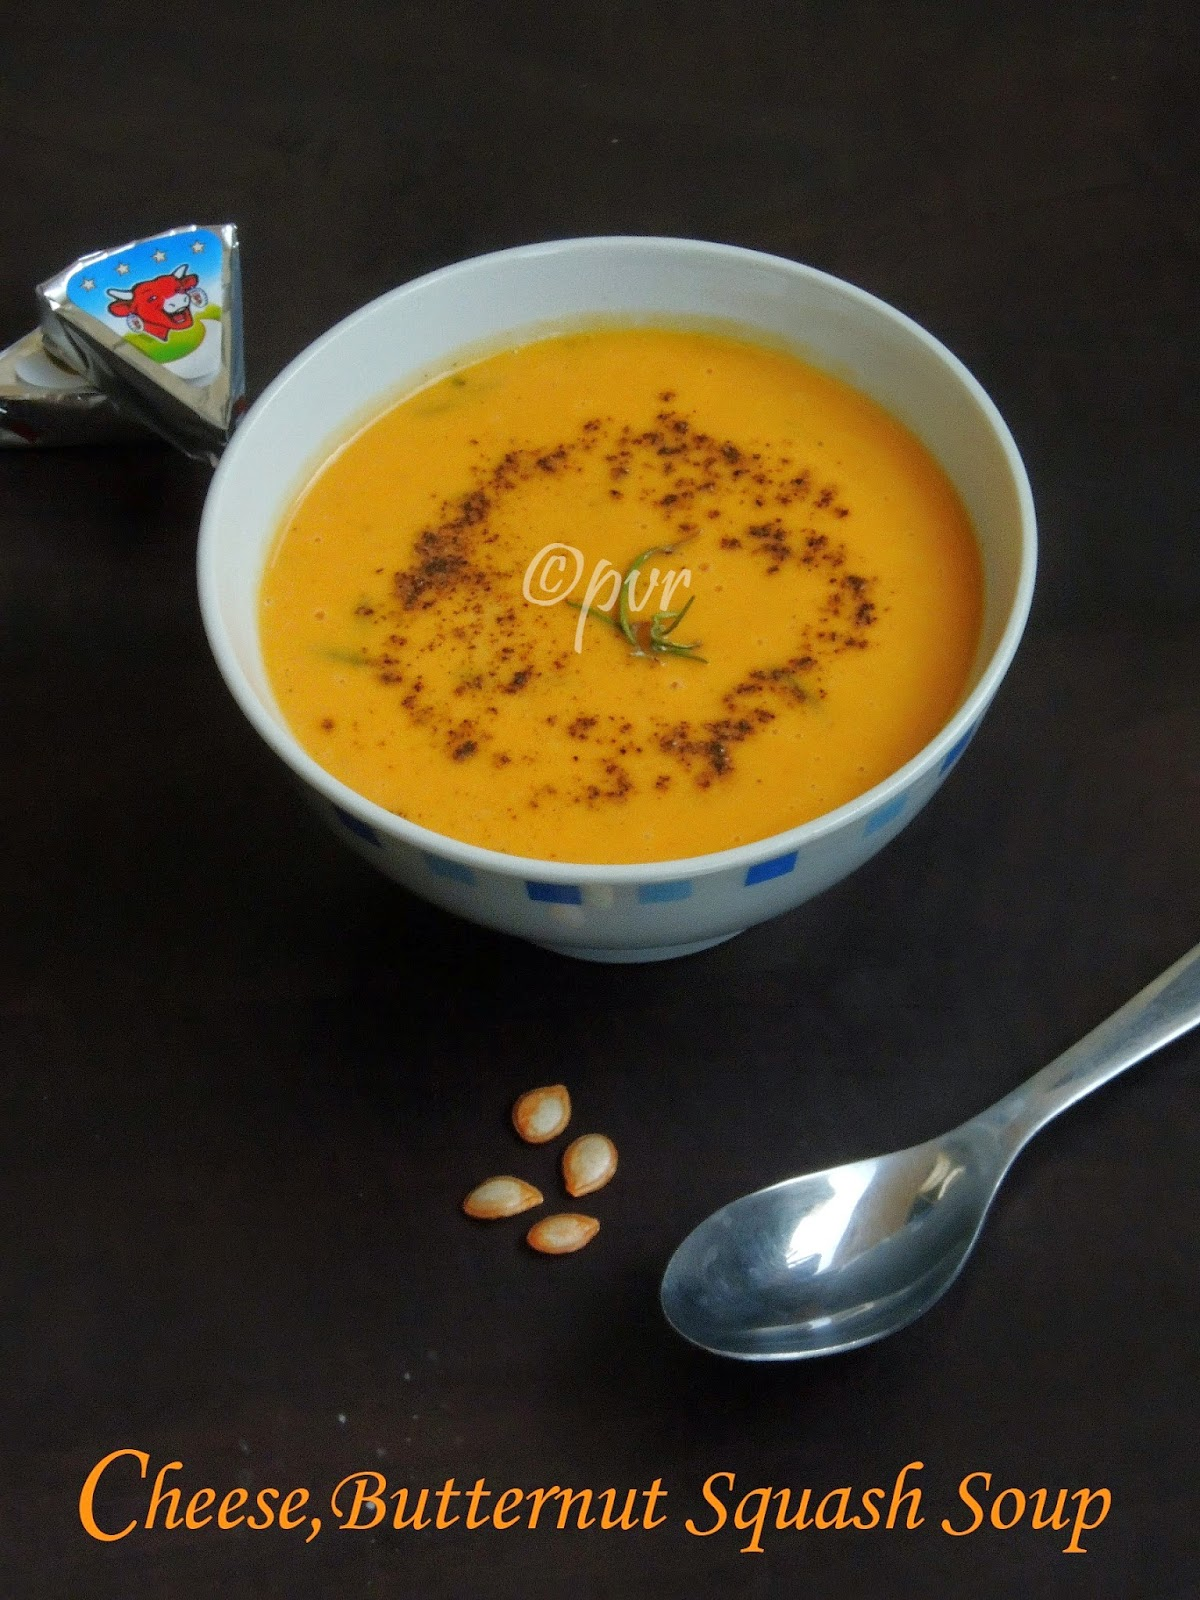 Cheese, butternut squash soup